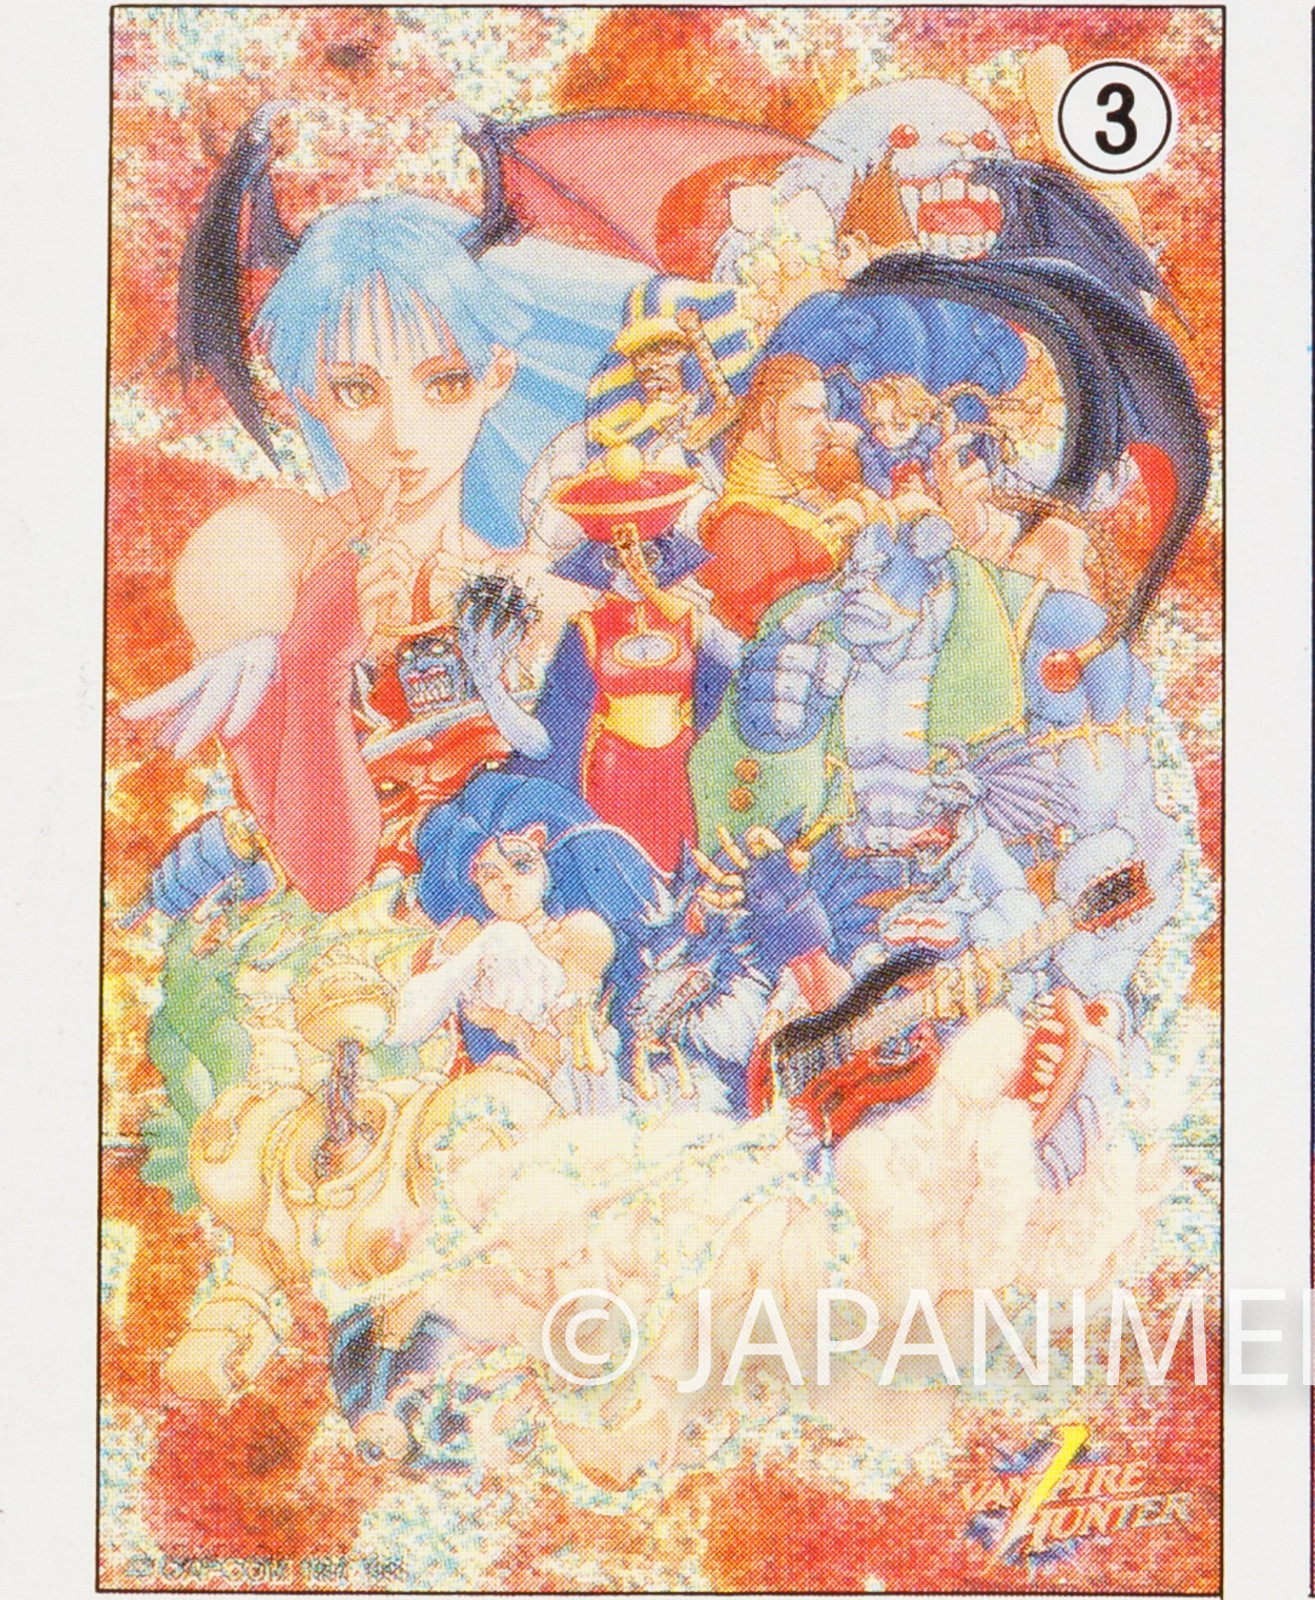 Darkstalkers (Vampire Hunter) Toy Jigsaw Puzzle 54 Pieces #3 JAPAN Capcom